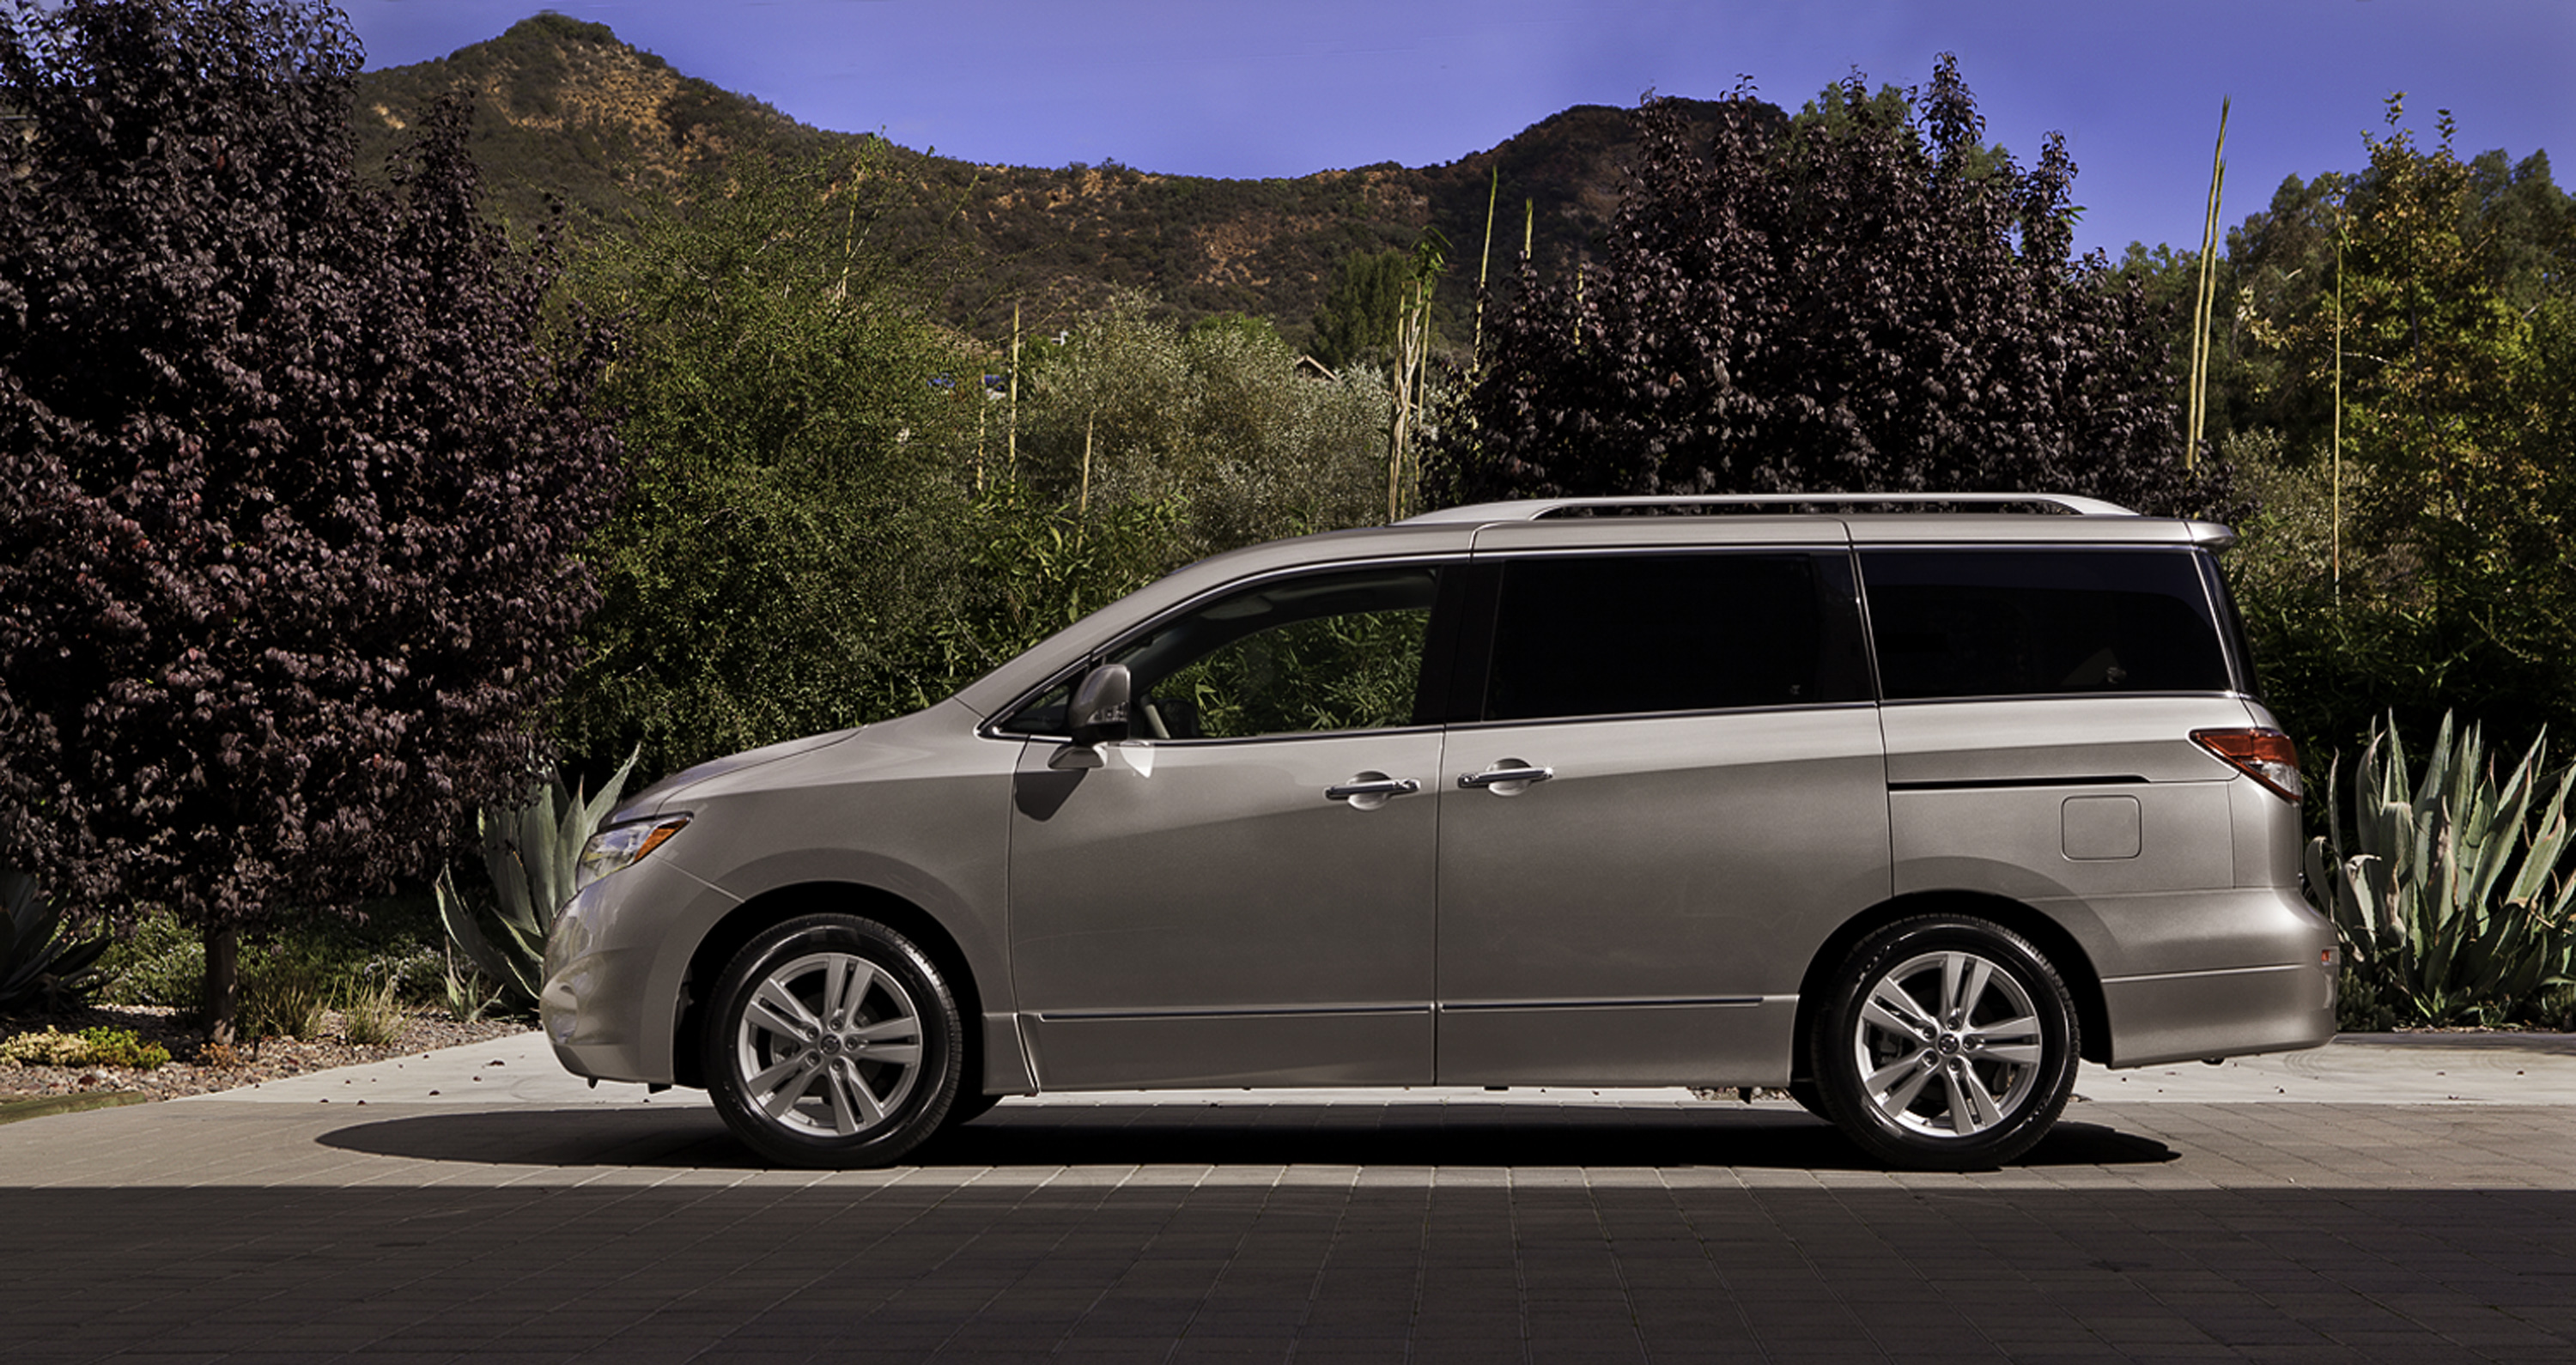 Cars nissan quest #1